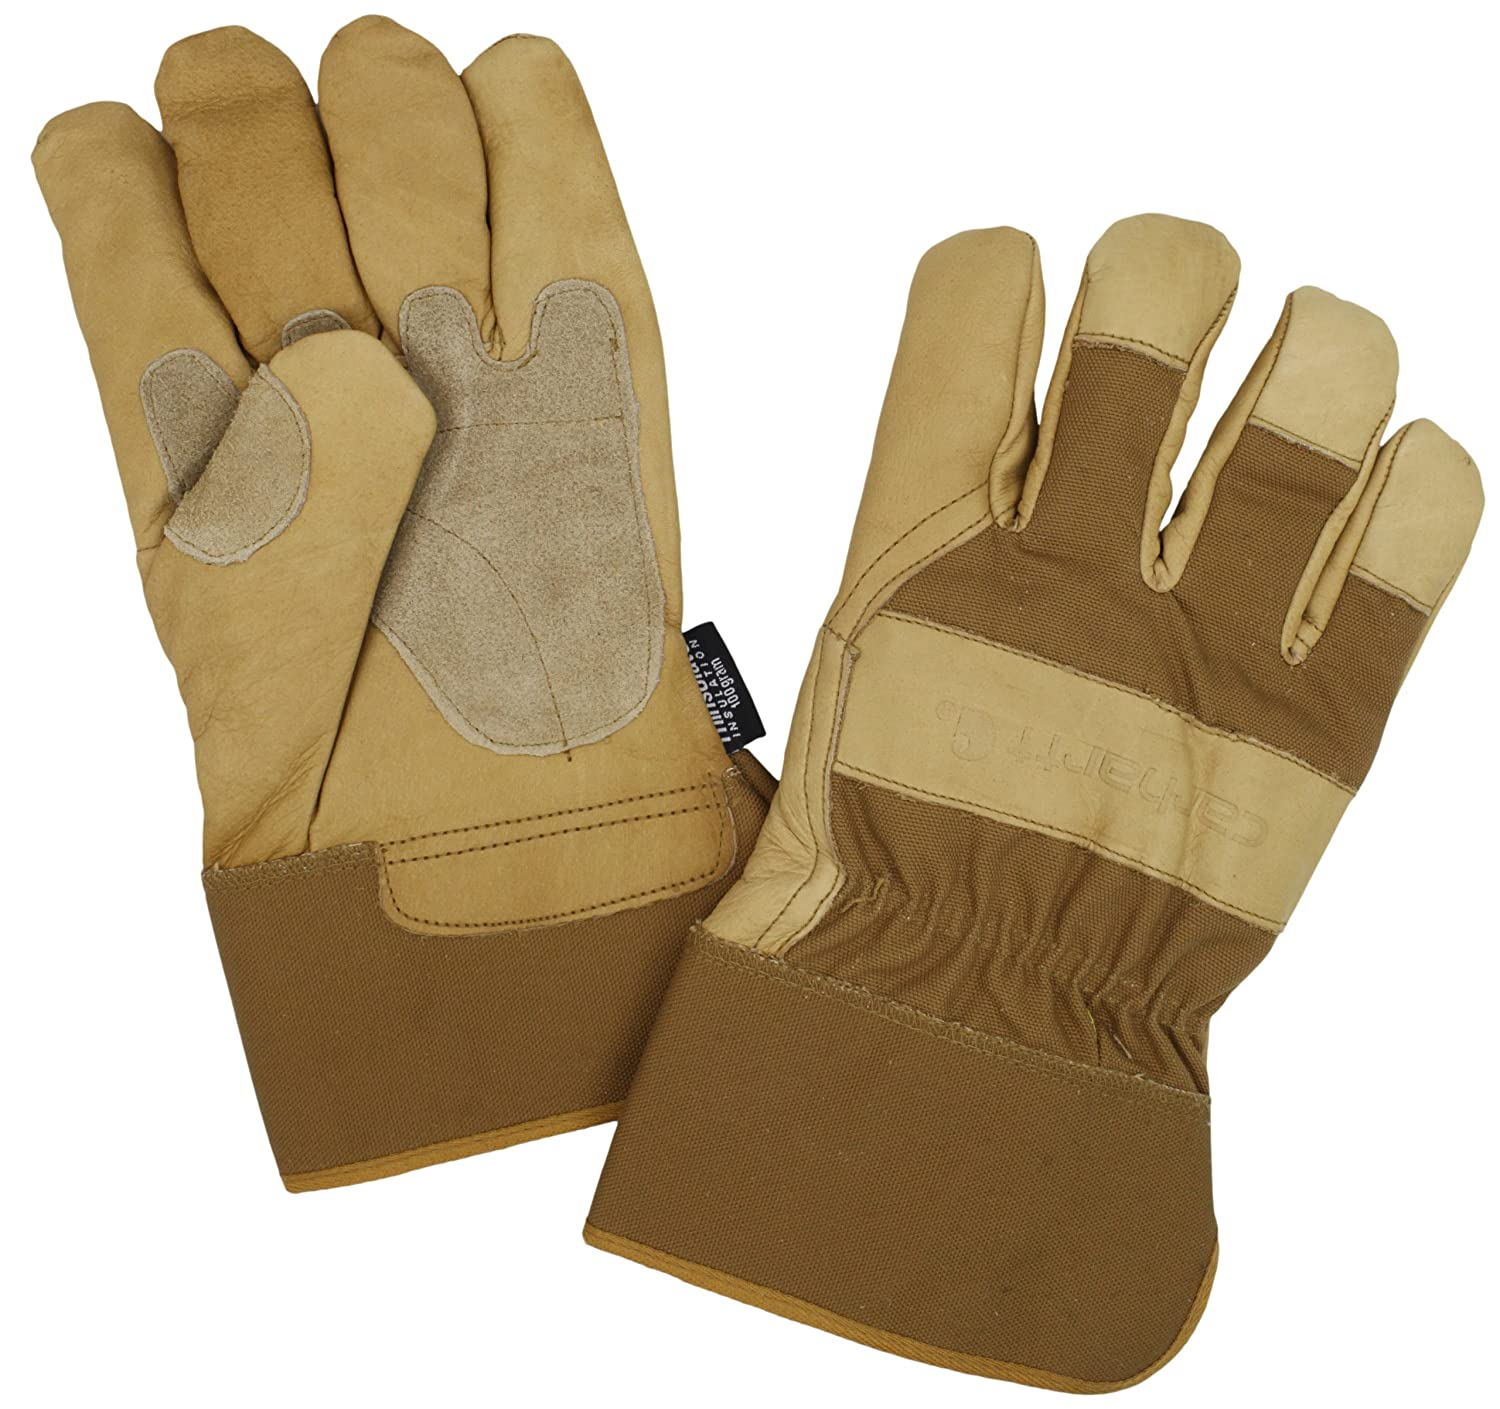 Carhartt Men's Insulated Grain Leather Work Glove with Safety Cuff Carhartt Men' s Gloves A513